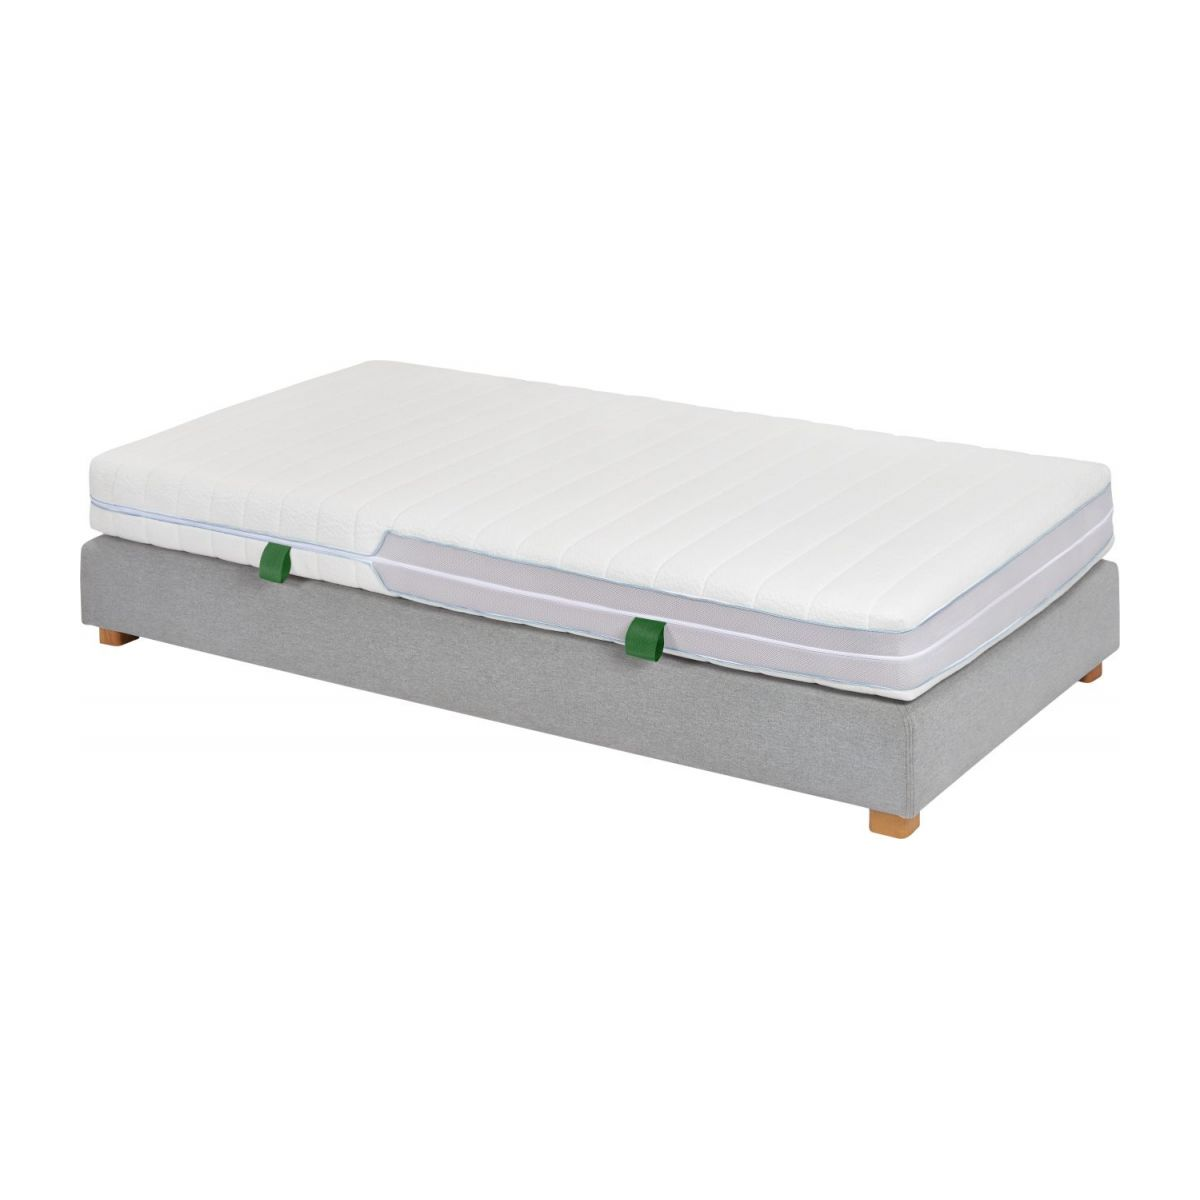 Matelas en latex, width 18 cm, 80x200cm - medium support n°5